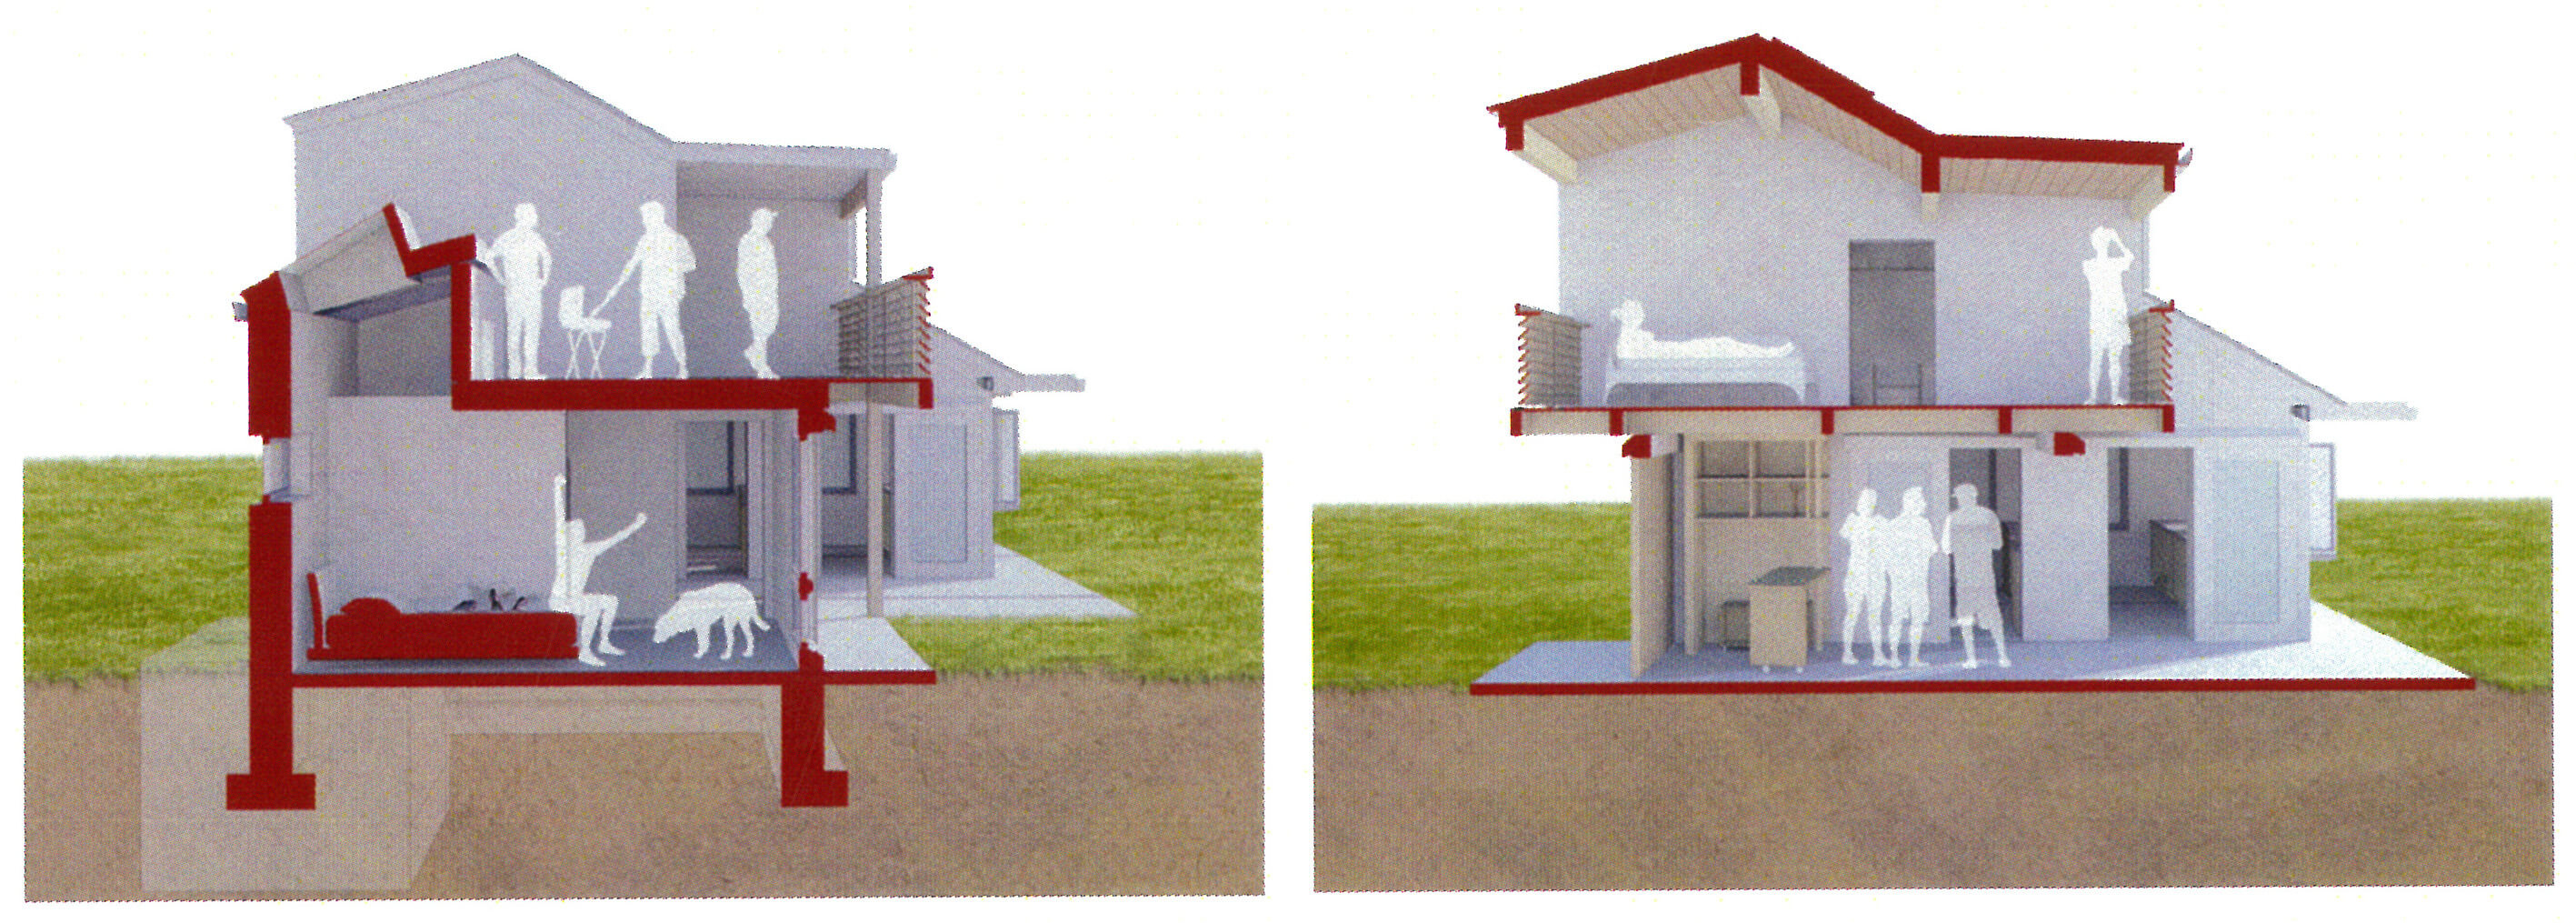 forever-home-building-section-2-3